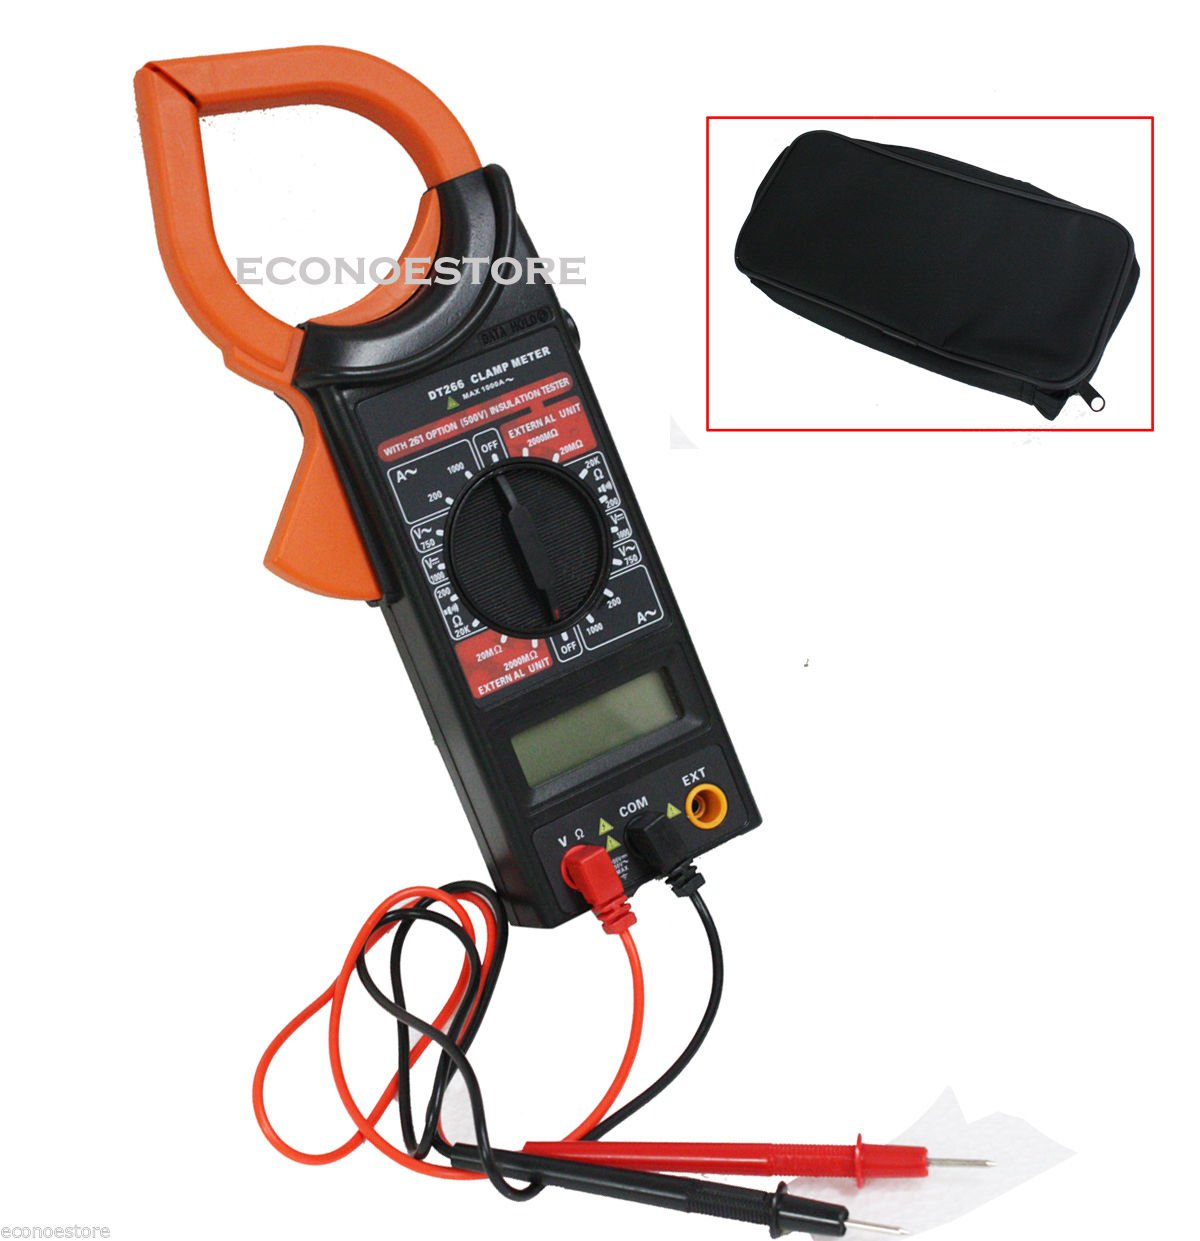 DT266 AC/DC Meter Electronic Tester Digital Multimeter Clamp